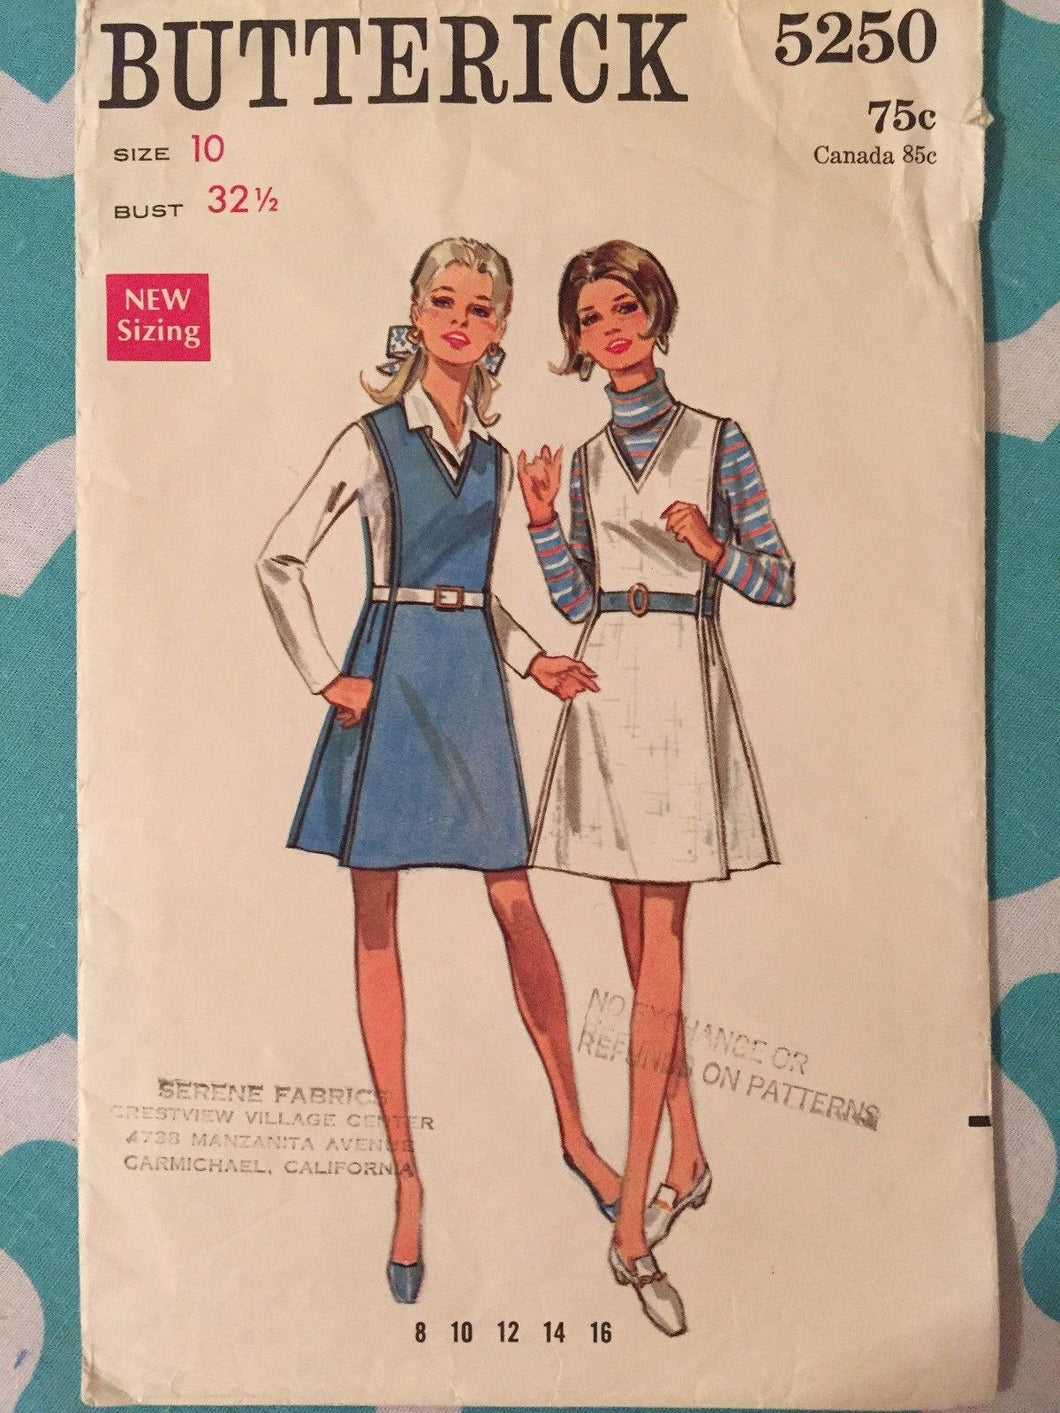 Vintage 1970's Butterick #5250 Sewing Pattern Size 10, Bust 32.5